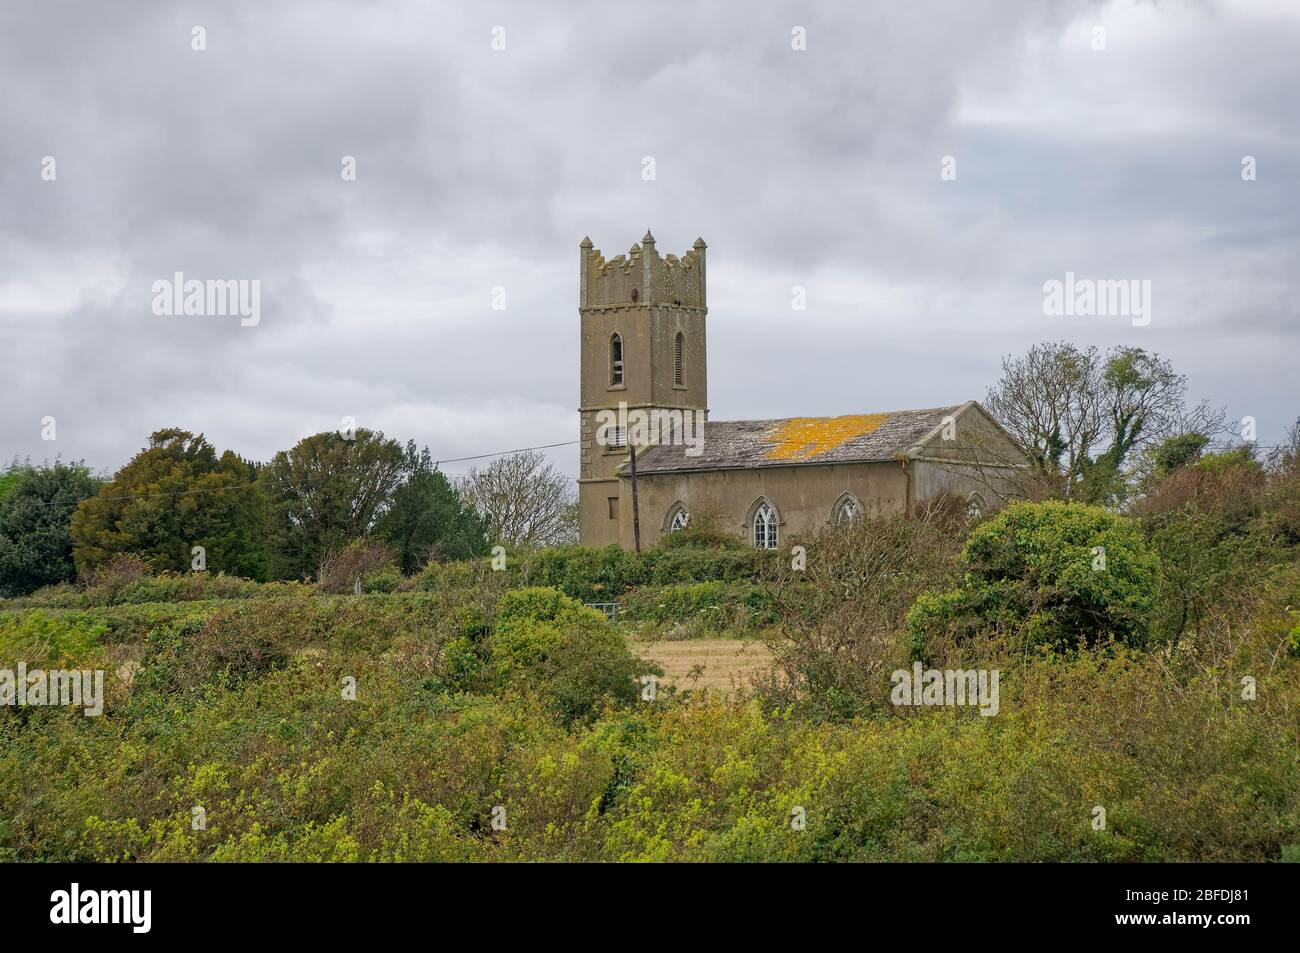 St Mary's church situated on Johns Hill above the estuary at Kieran's Quay in County Wexford on an overcast day in October. Stock Photo